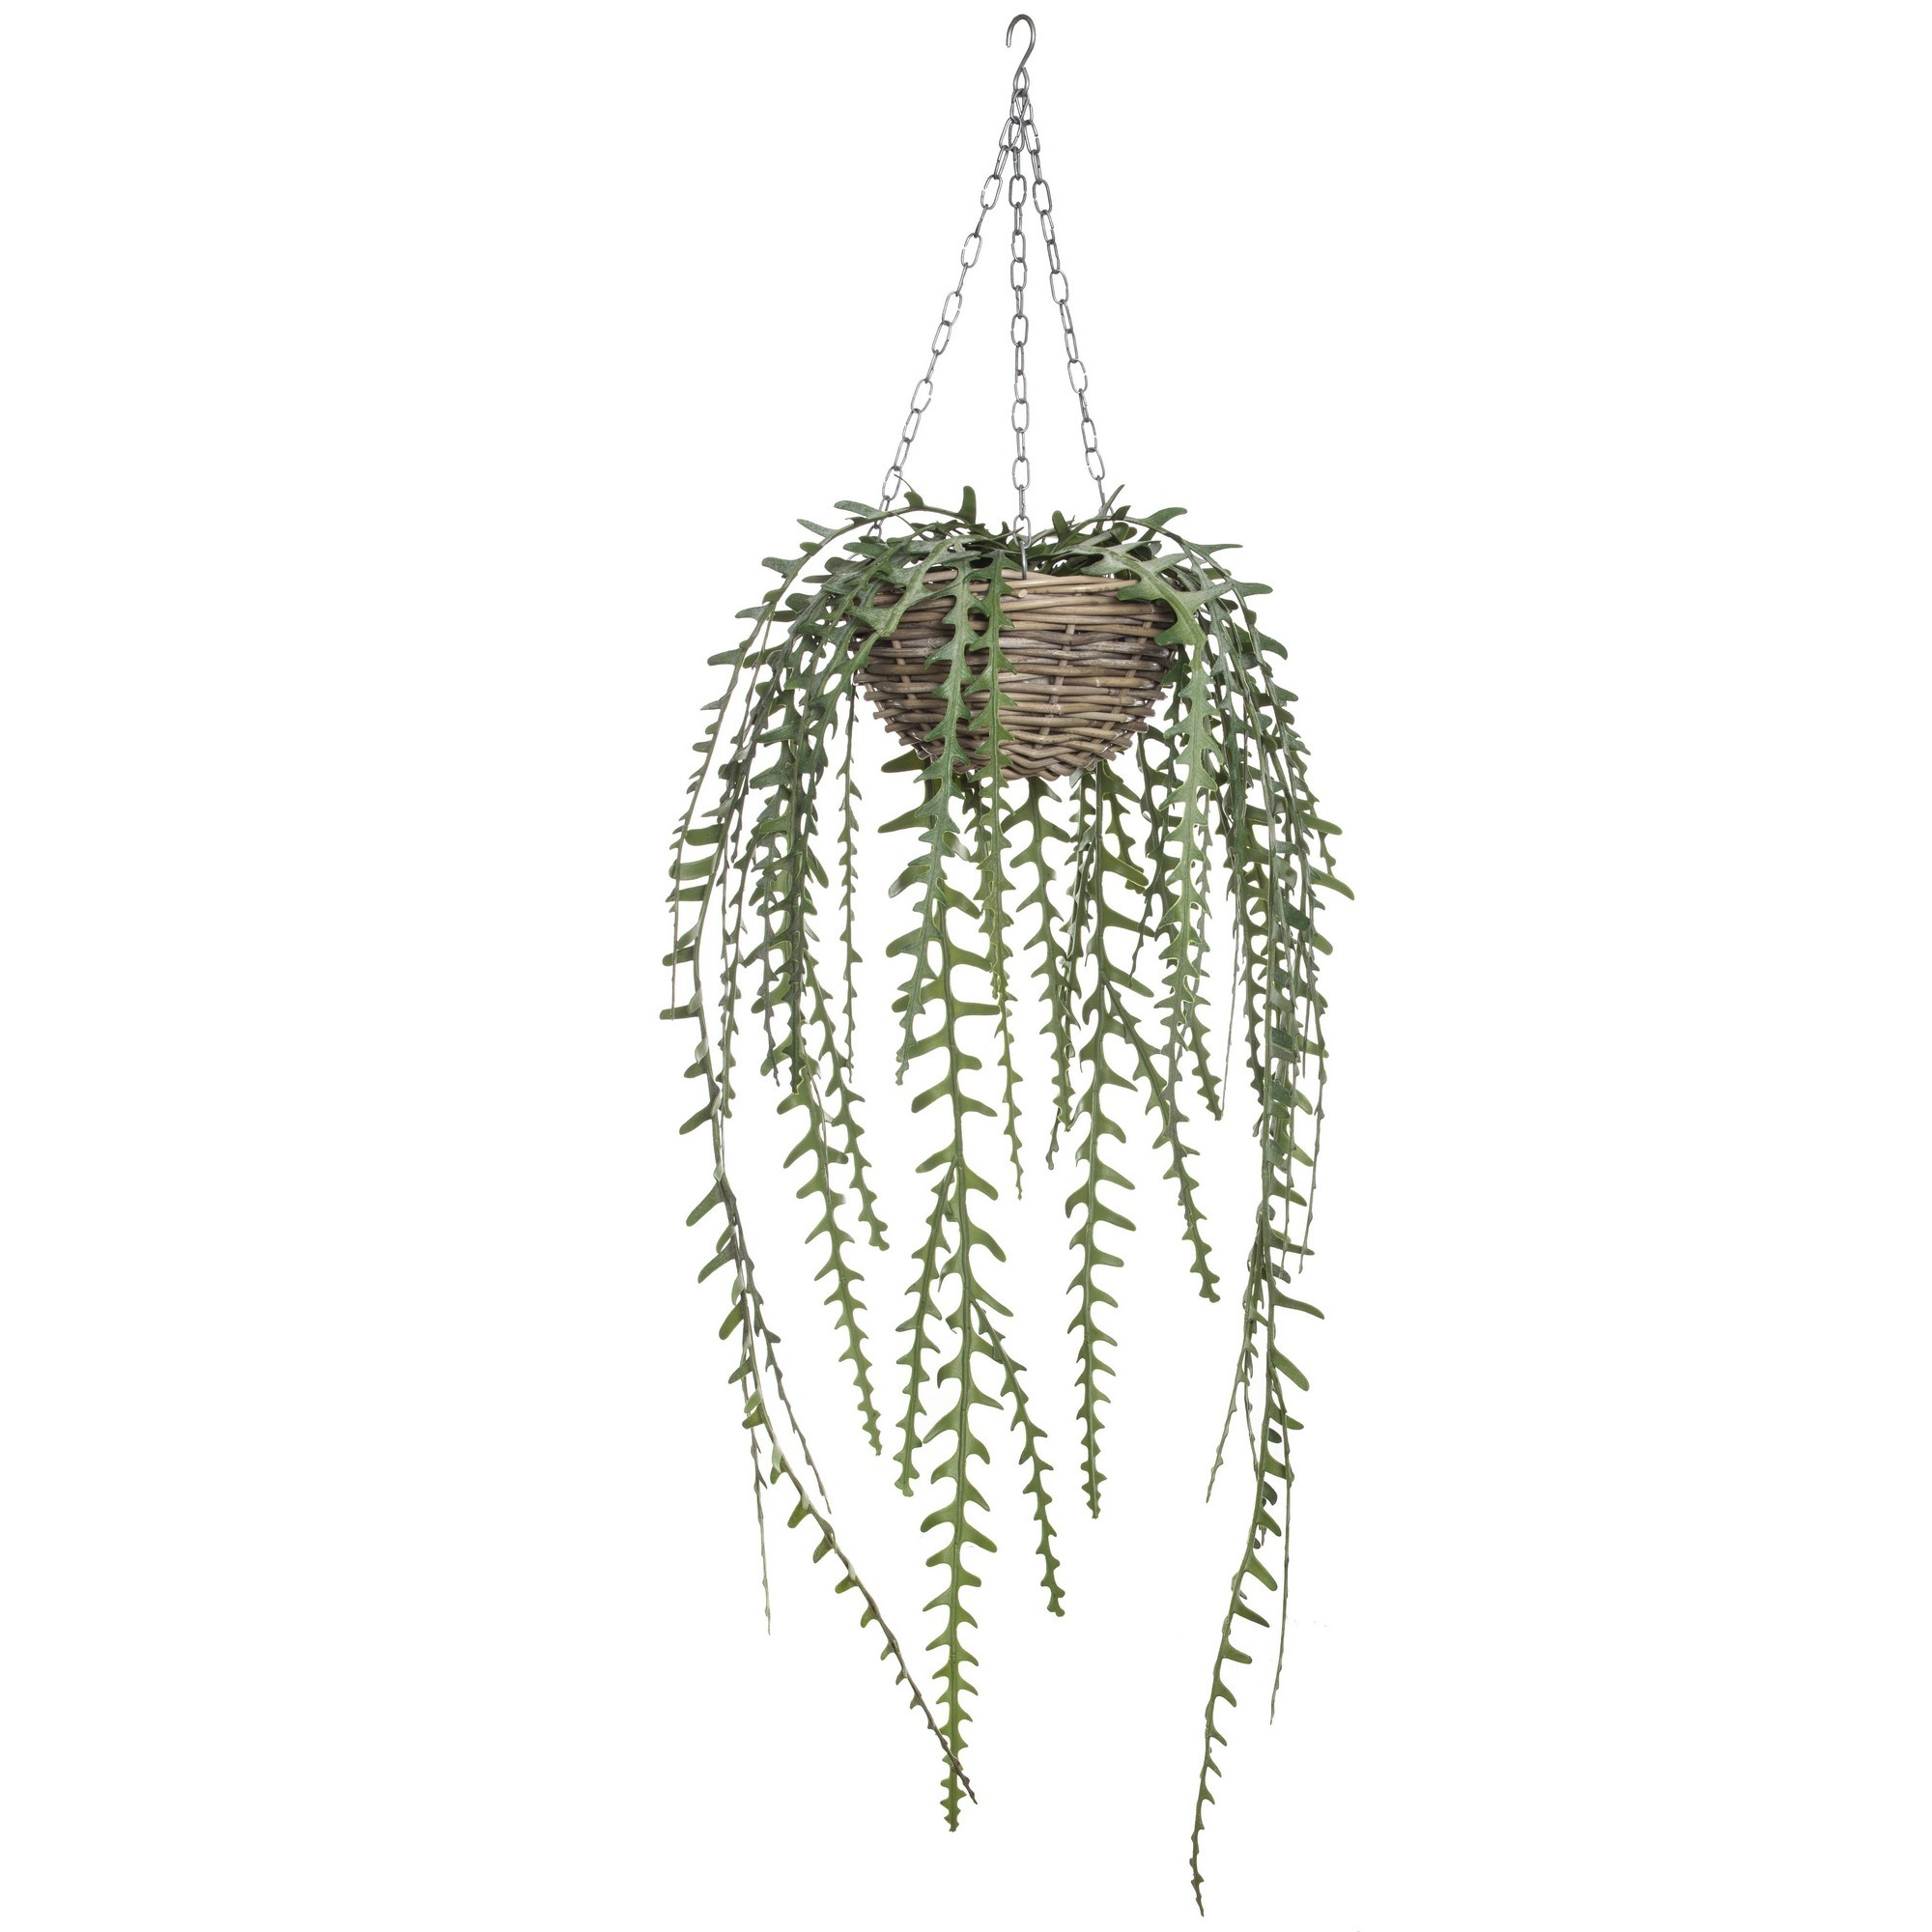 Artificial Cactus Fern in Rattan Hanging Bowl